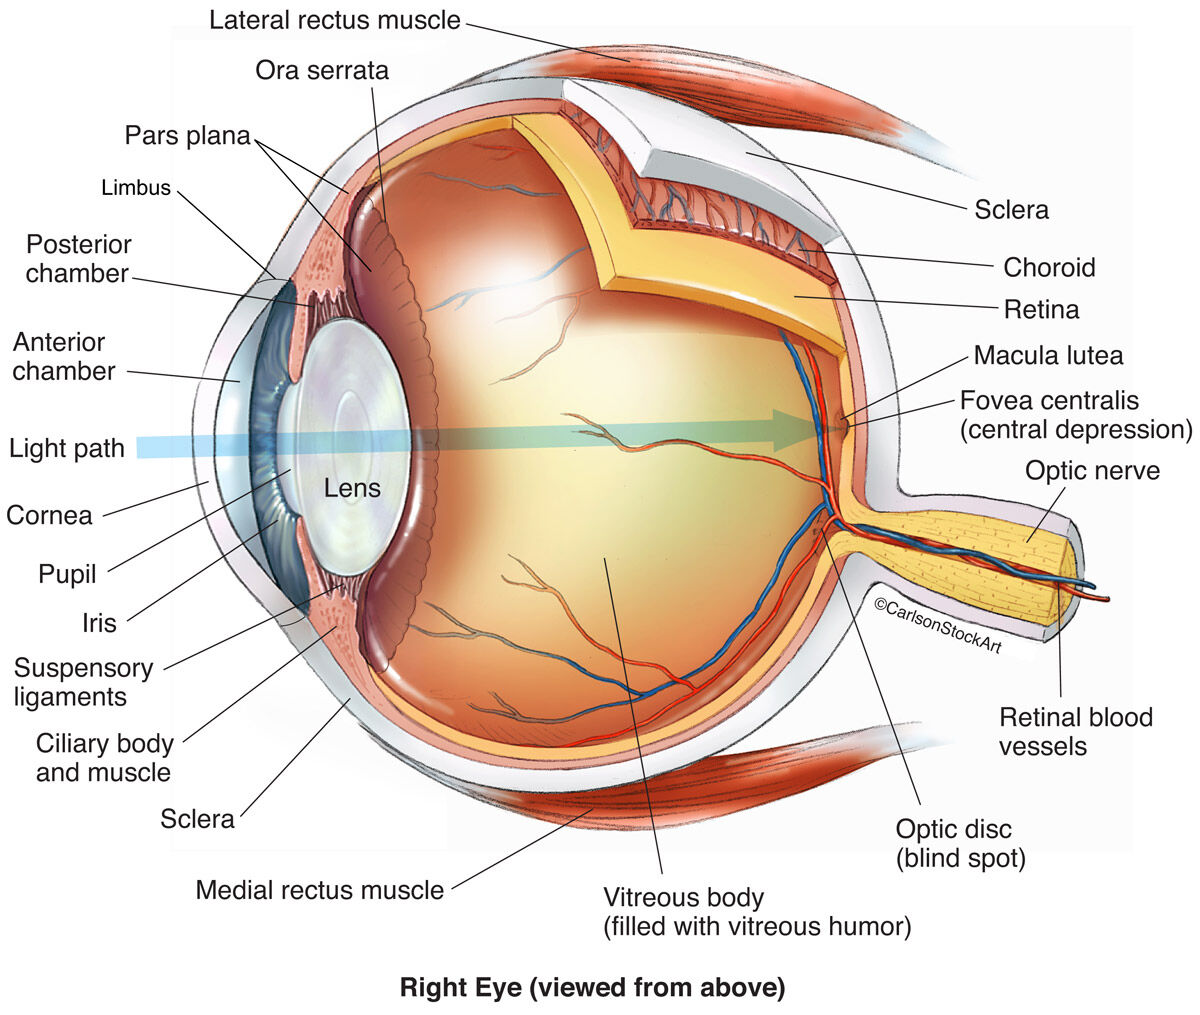 hight resolution of eye anatomy human eyeball lateral rectus muscle medial rectus muscle